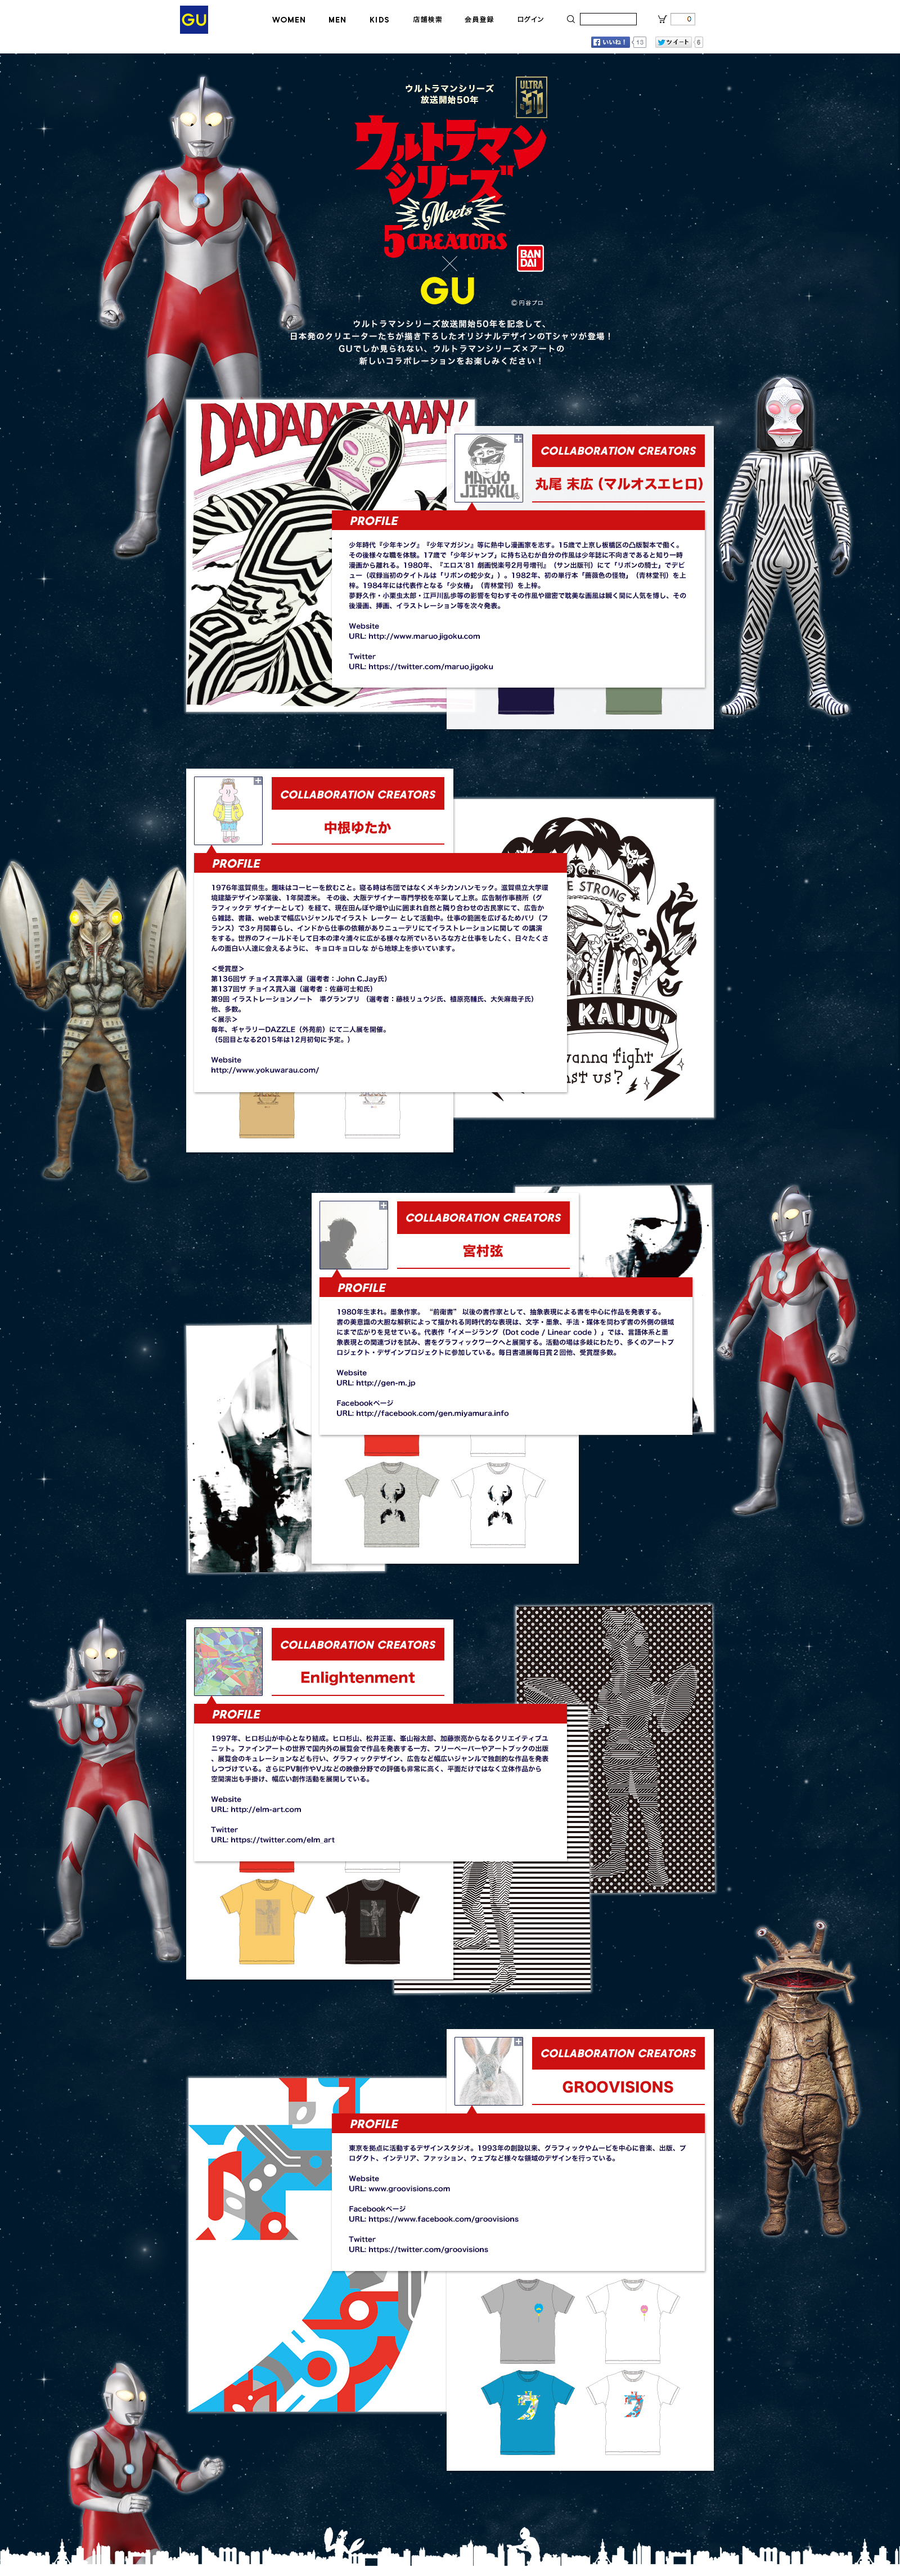 pc_160314_ultraman.jpg